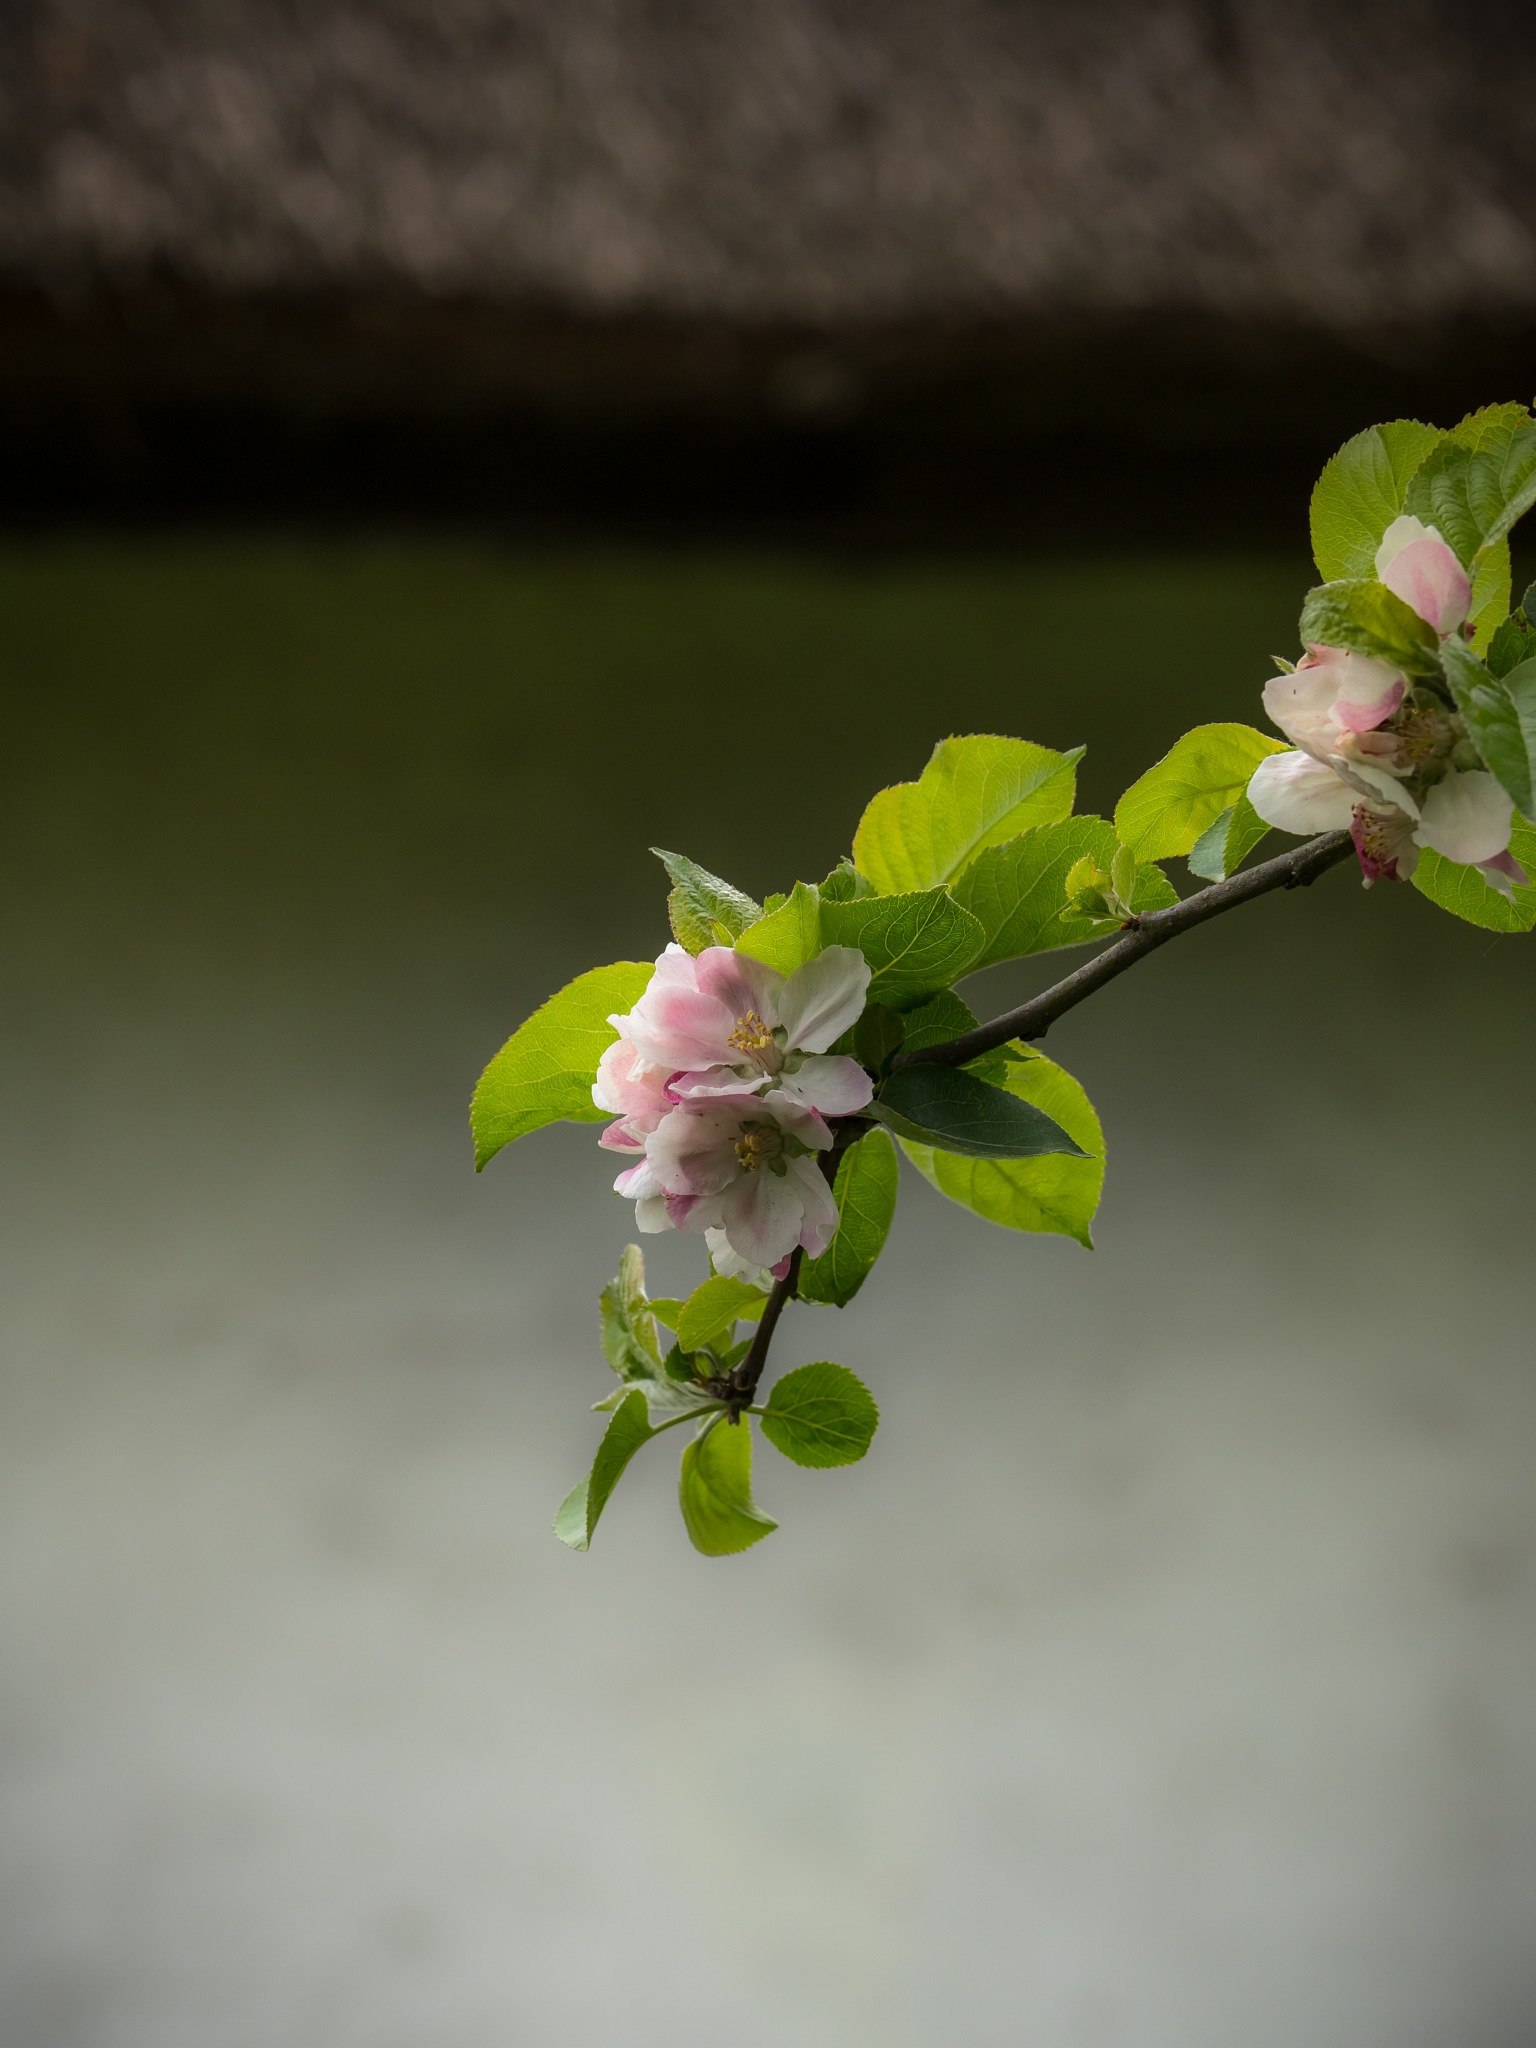 Apple Blossom by Sarah Walters